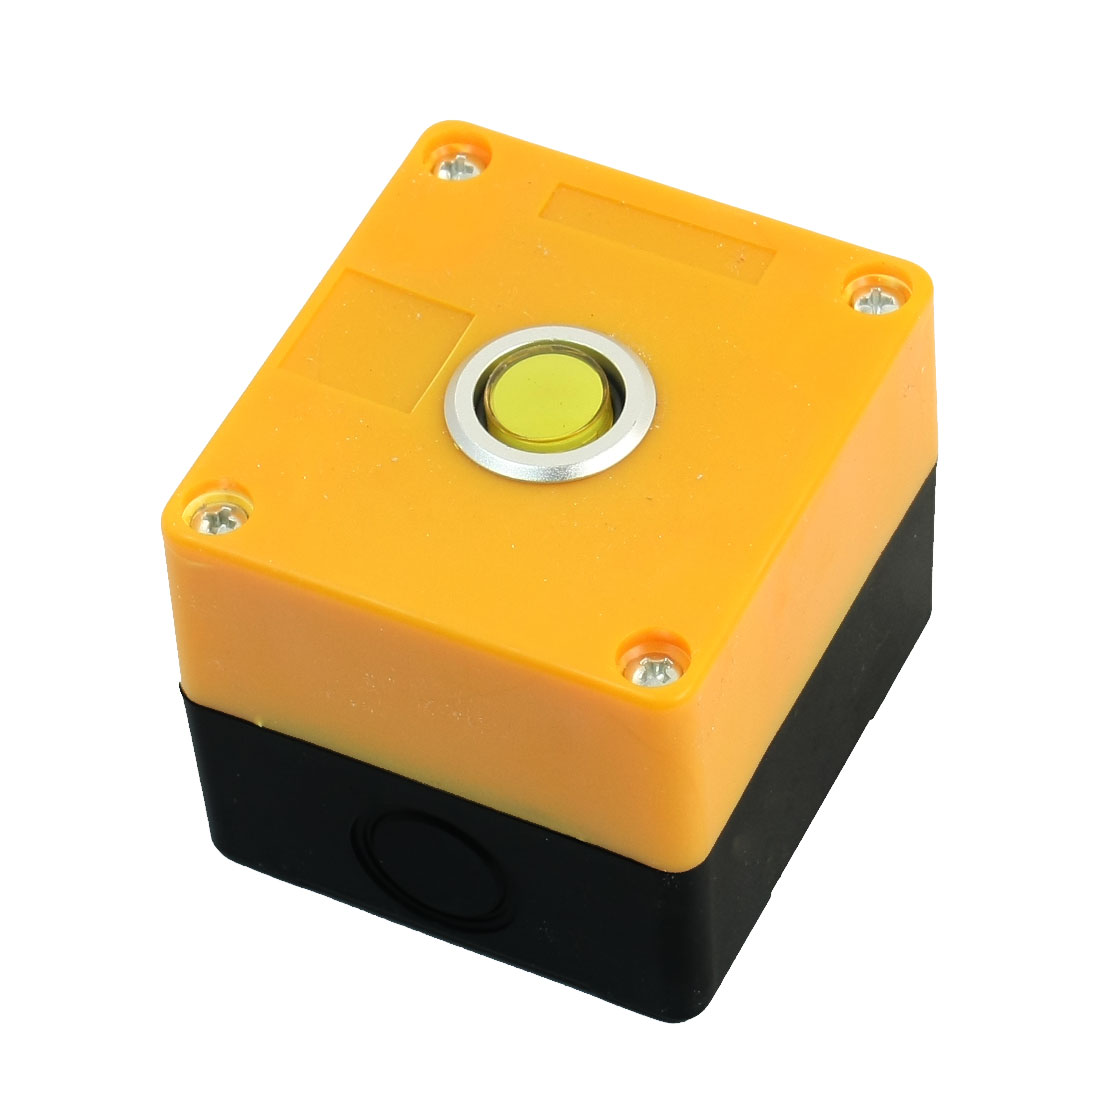 AC220V 5A Yellow Pilot Lamp SPDT 1NO 1NC 5Pin Latching Round Button Rectangle Plastic Pushbutton Station Switch Control Box Guard